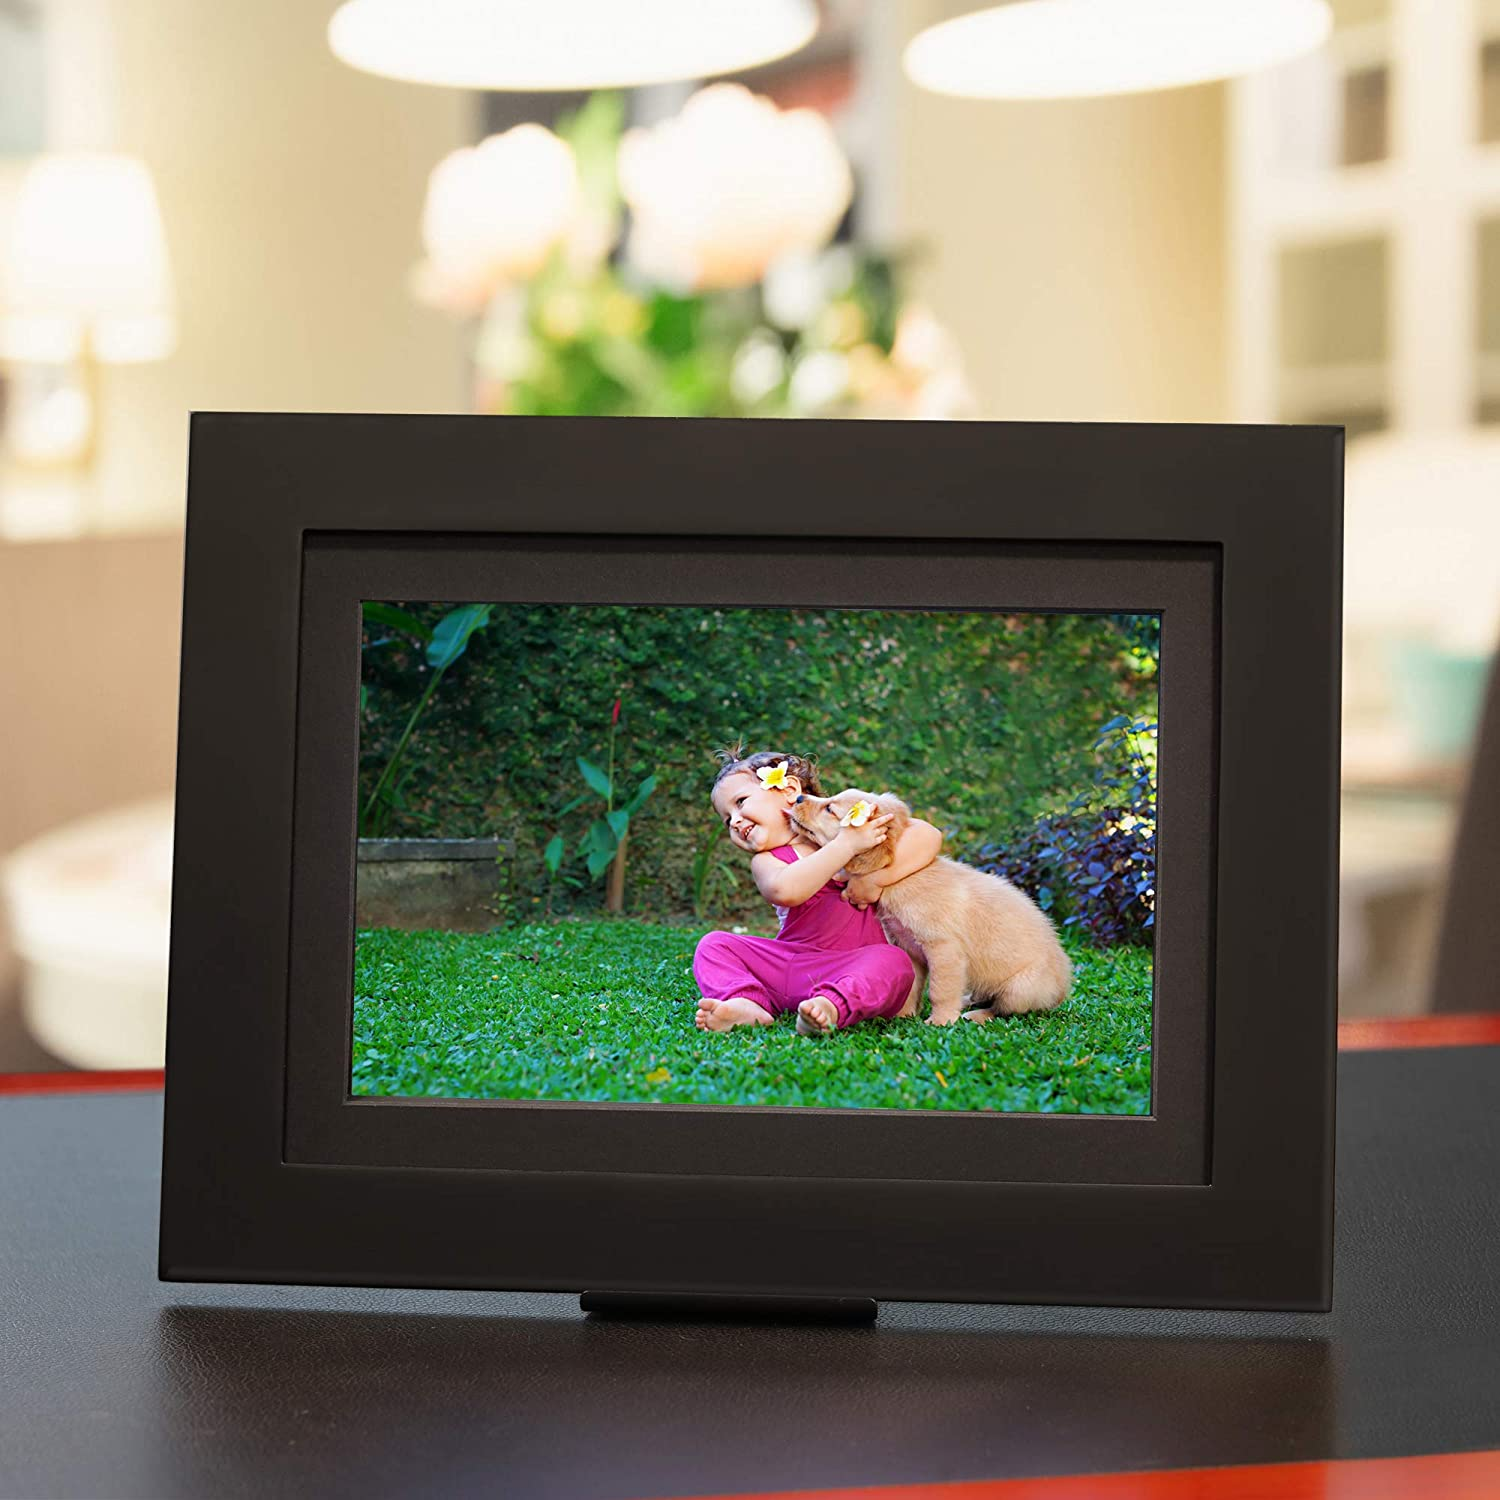 "Brookstone PhotoShare Smart Digital Picture Frame, WiFi, HD, Family Photo Album Slideshow, Tabletop End Table, Home Décor, 10"", Classic Black"